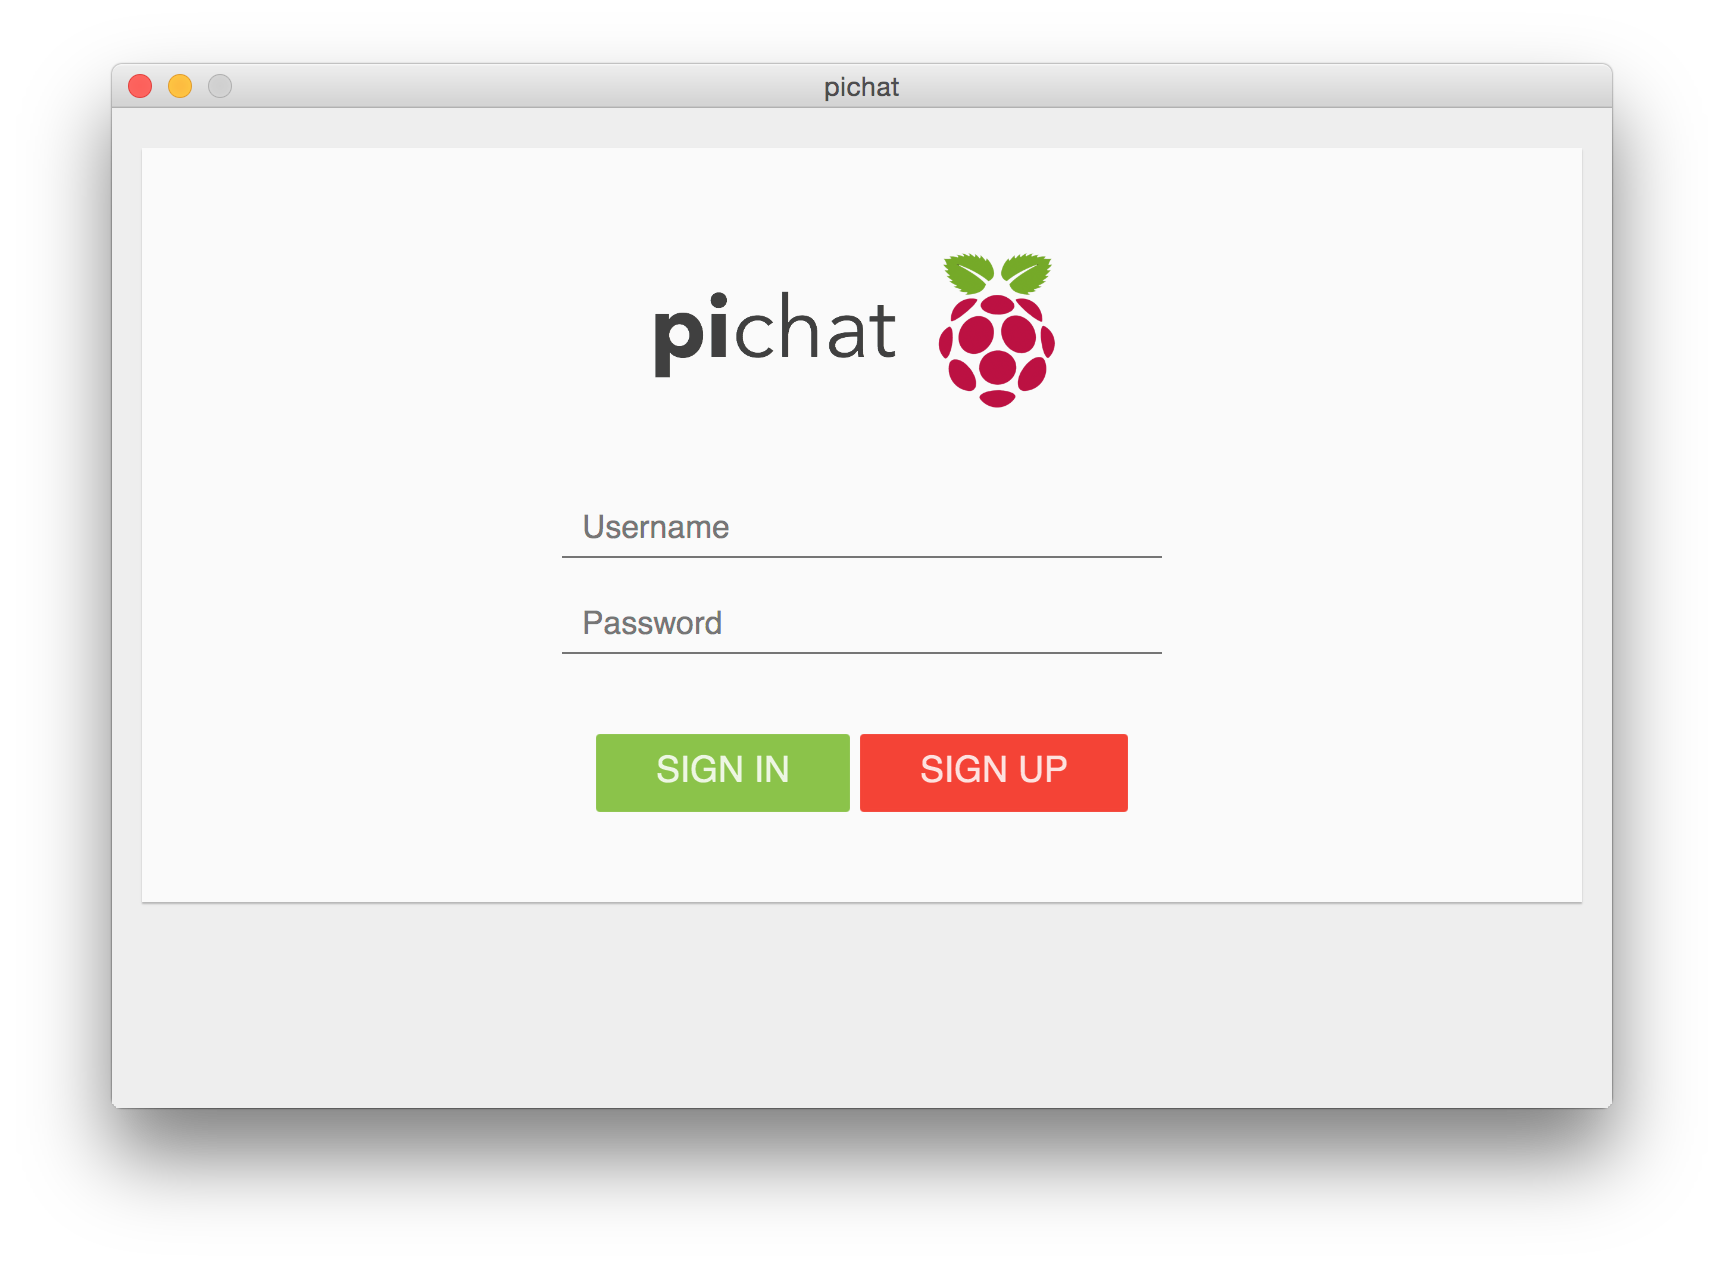 github jpadilla1 pi chat small chat using sockets done in java intro